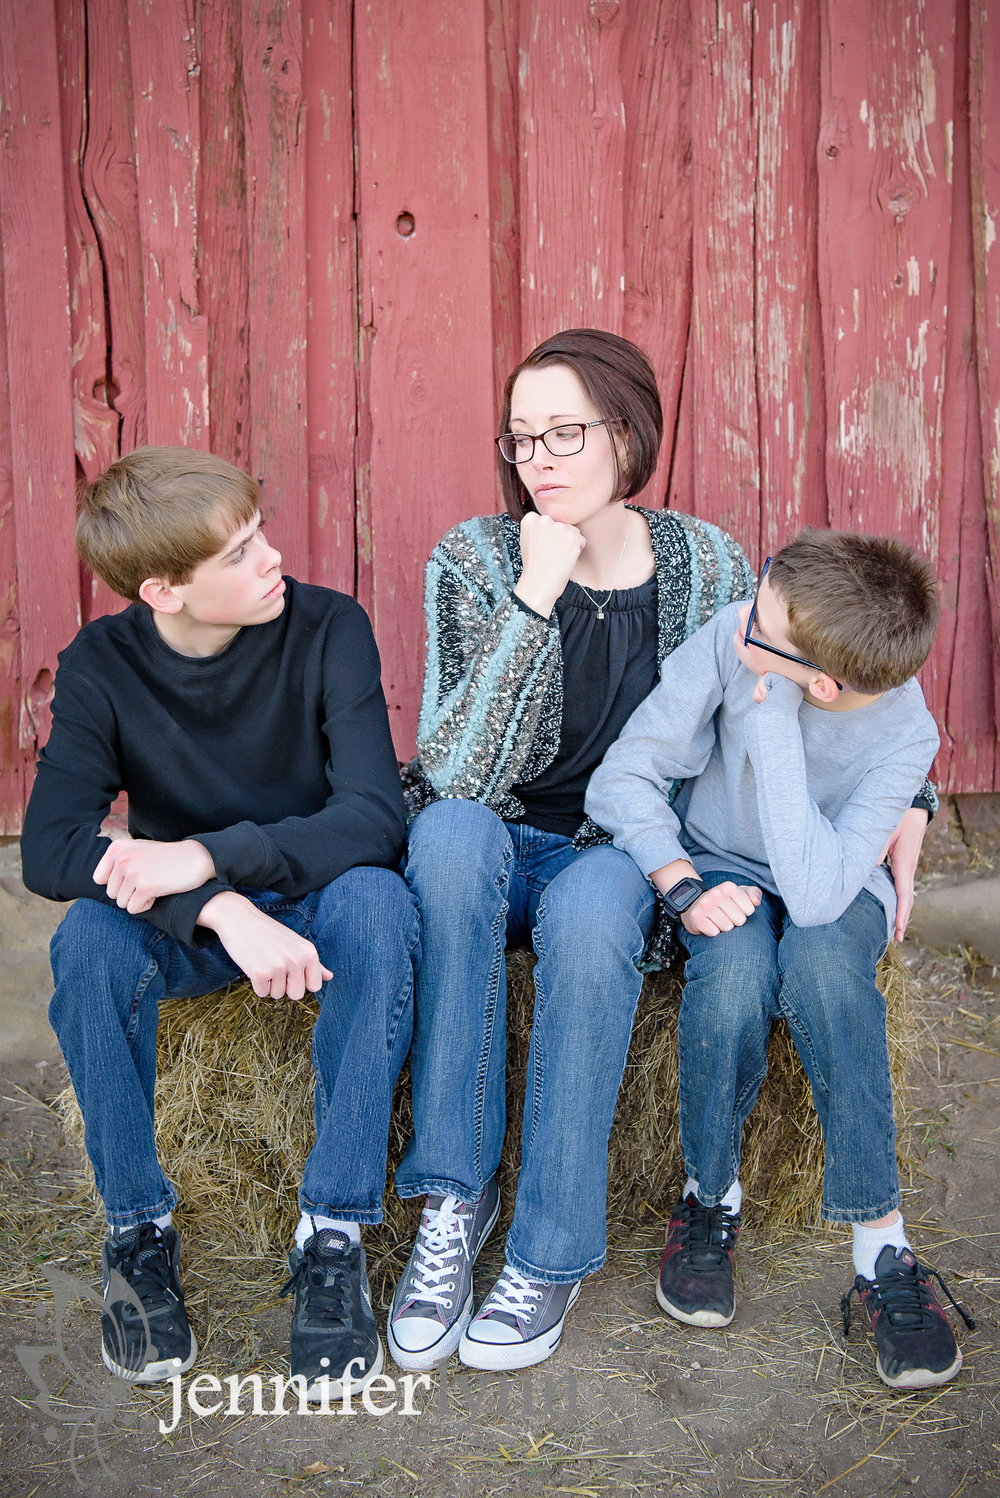 Goofy Mom and Sons on Hay Bale Barn